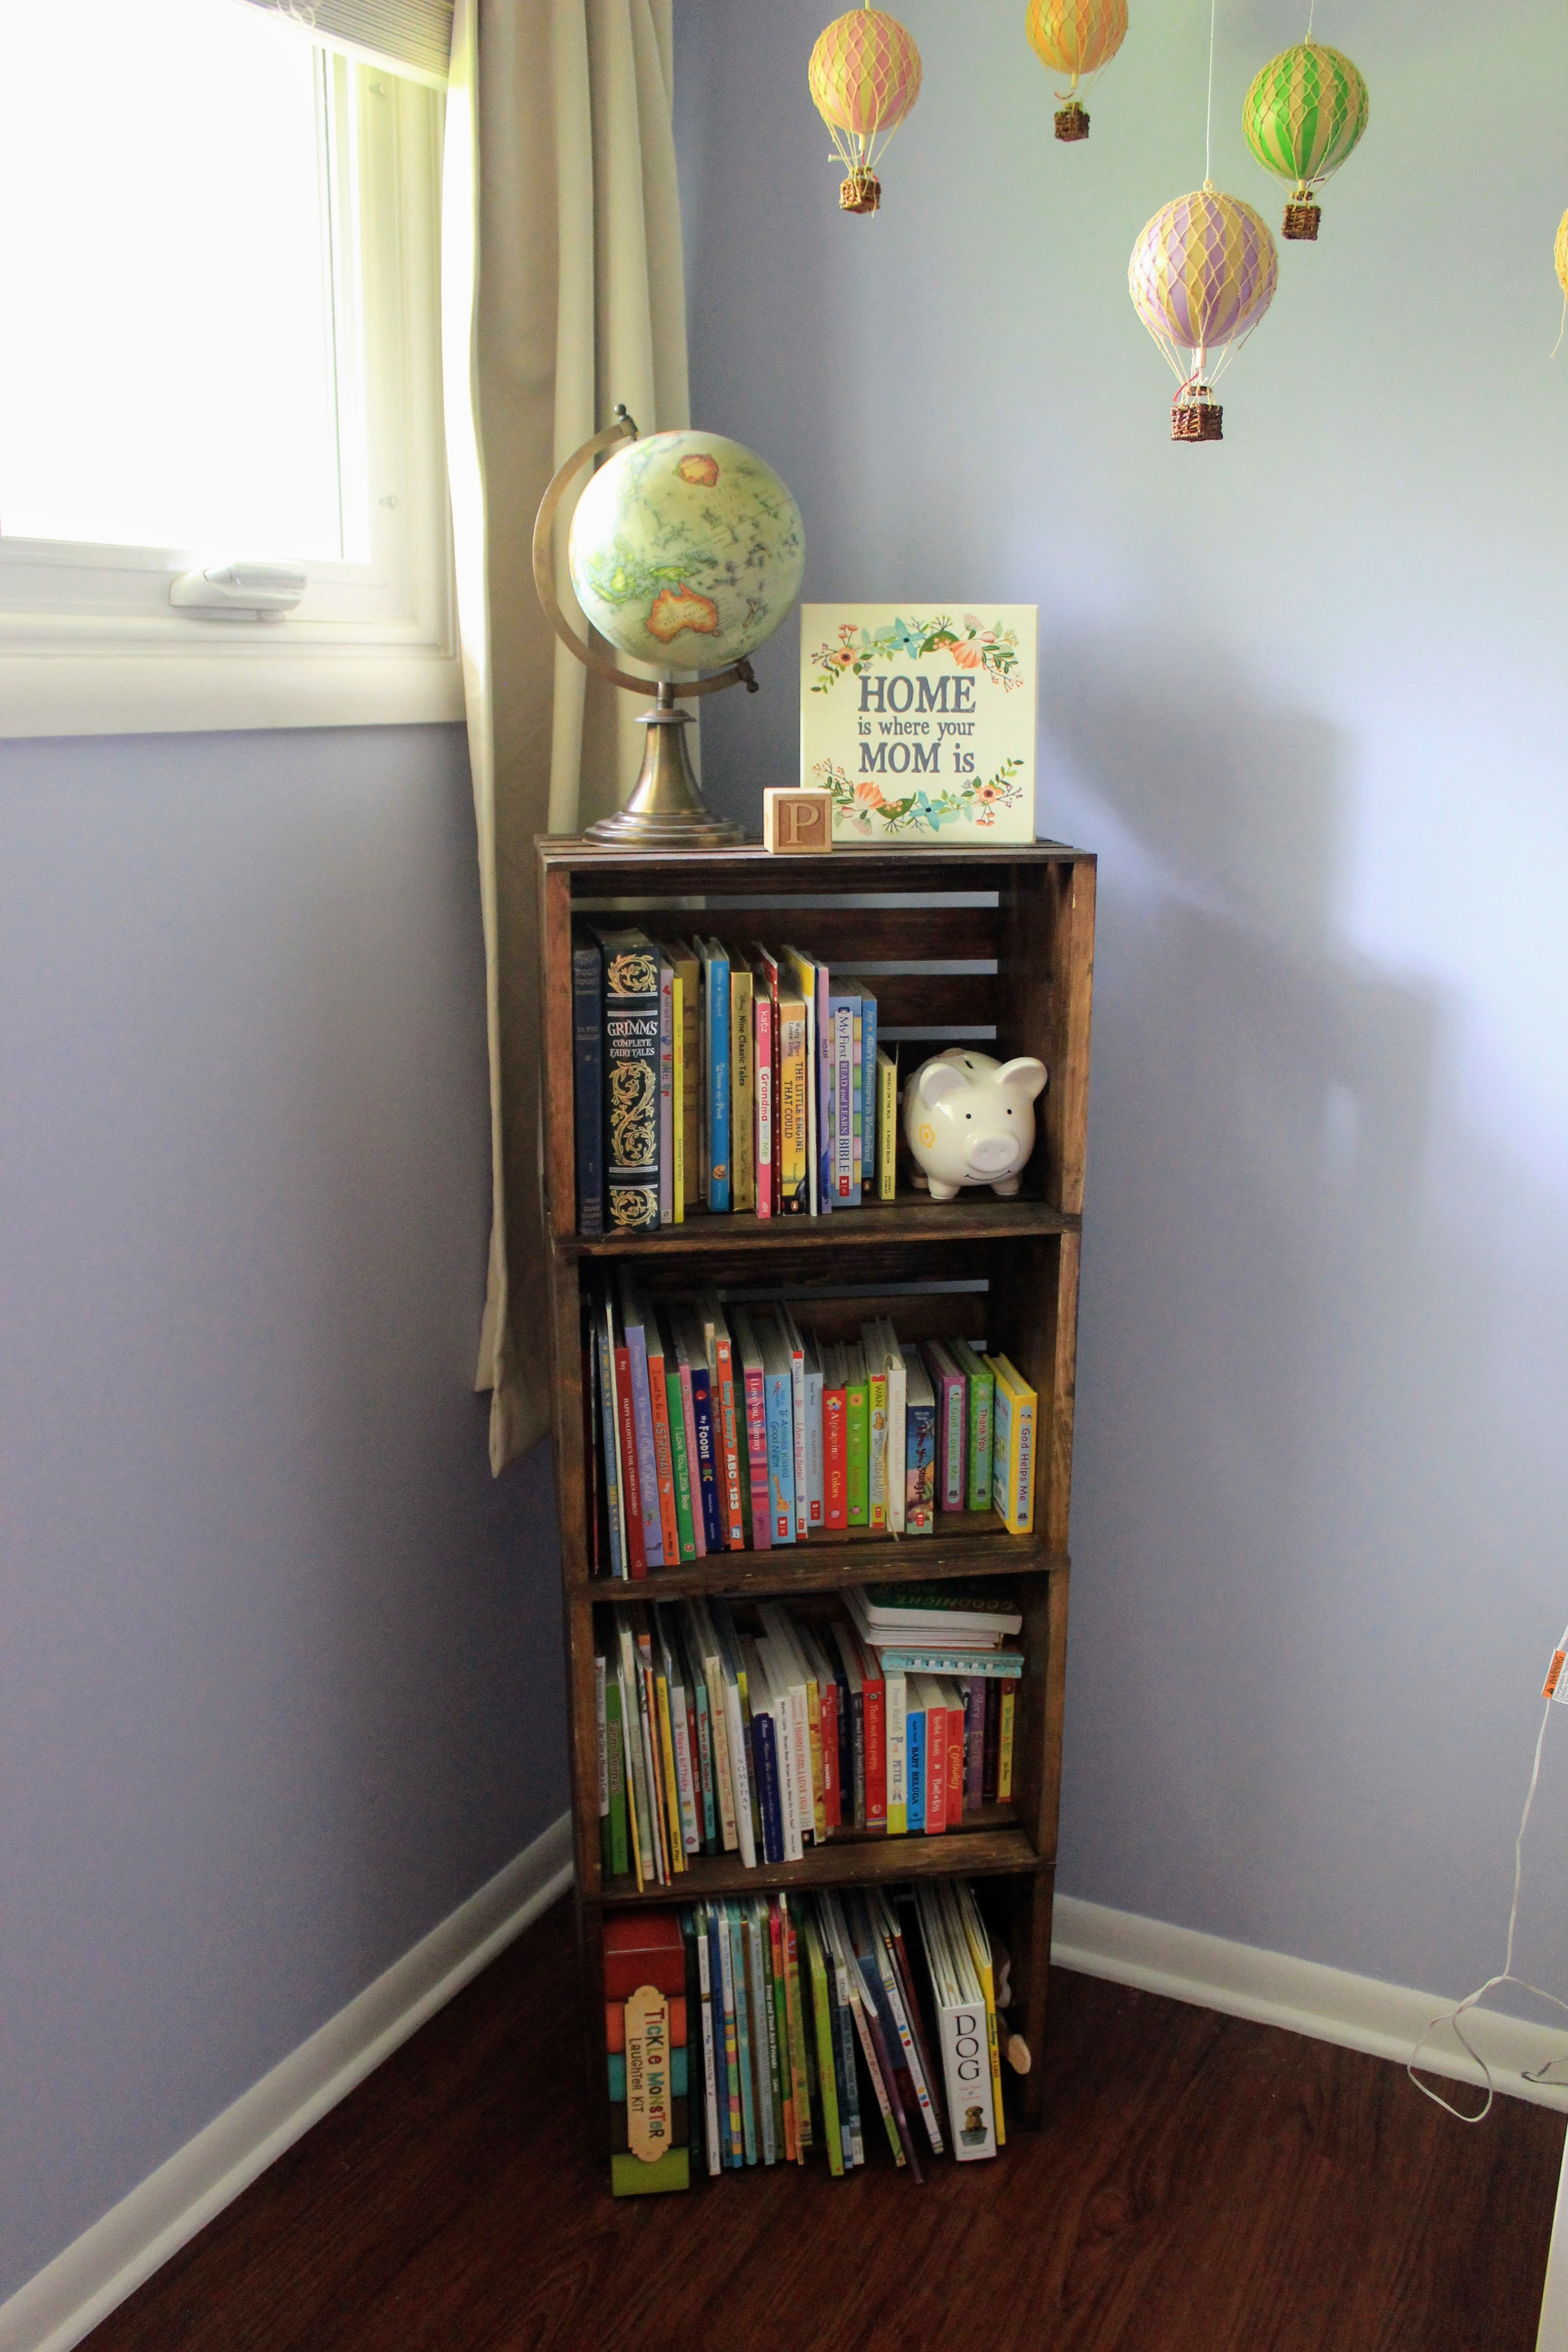 Diy Children S Crate Bookshelf Marina Makes